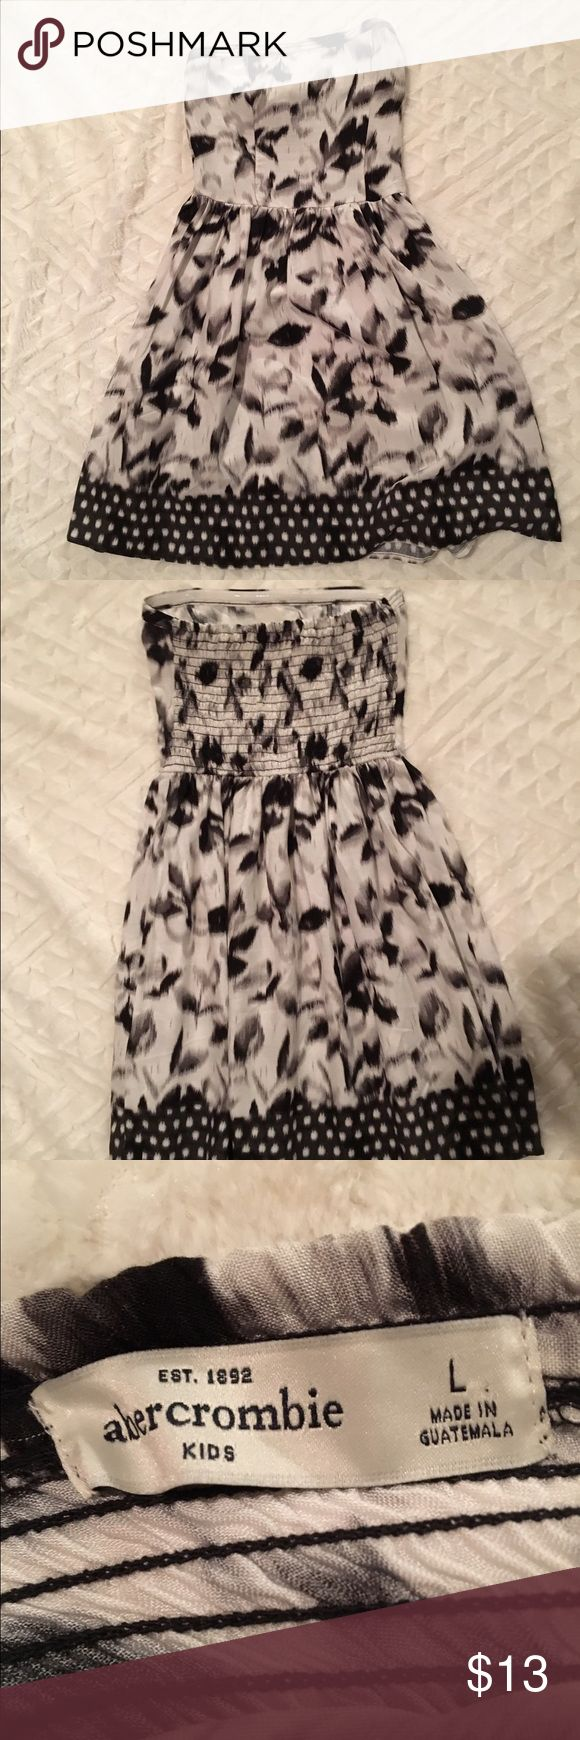 Abercrombie kids size Large kids Size large Abercrombie kids dress. Good as new in perfect condition abercrombie kids Dresses Mini